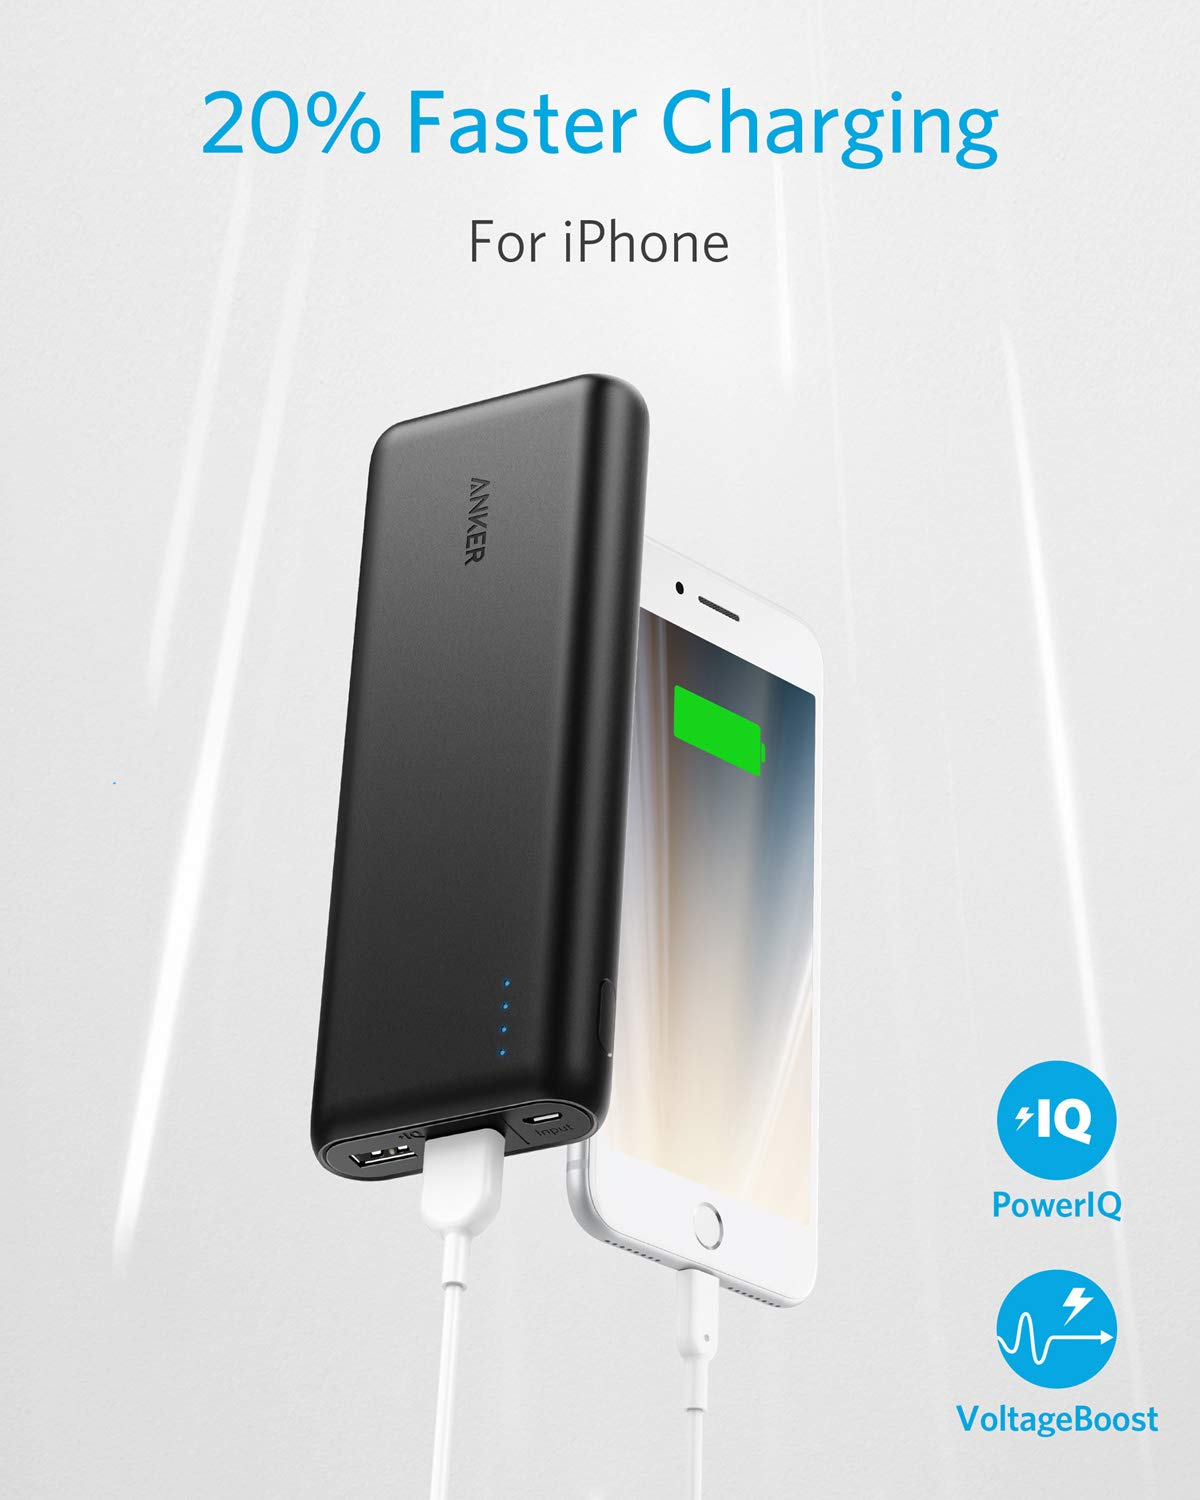 Anker Powercore 20100 Ultra High Capacity Power Bank Ipad Usb Cable Wiring Diagram On Headphone Jack Iphone Electronics